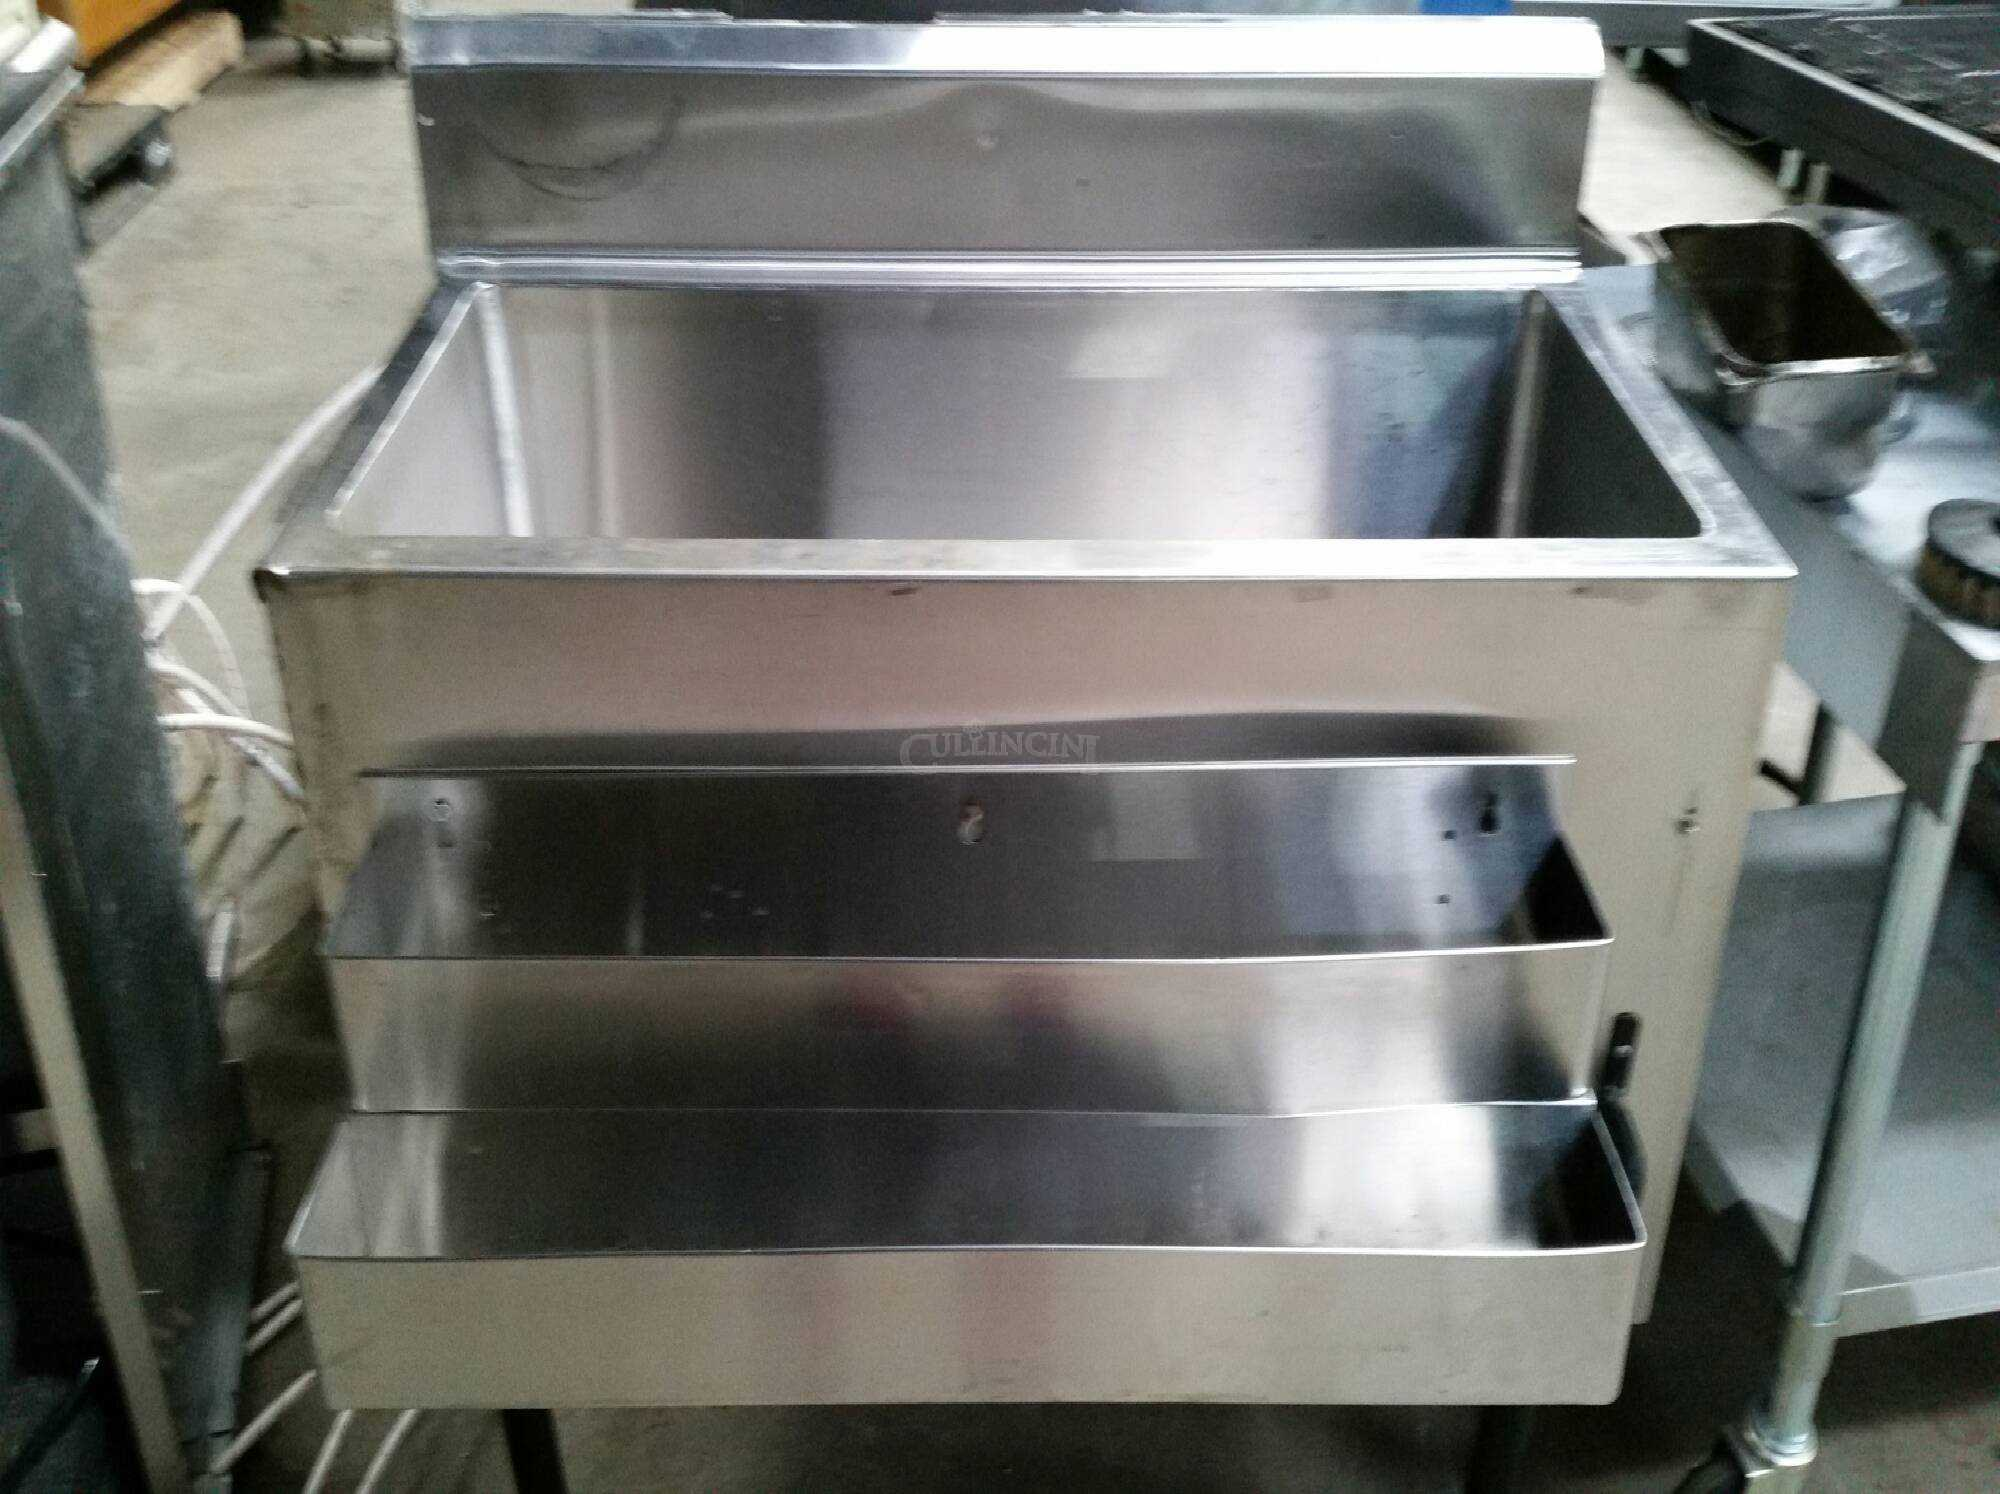 amps stack impinger product phase lincoln electric pizza oven double conveyer